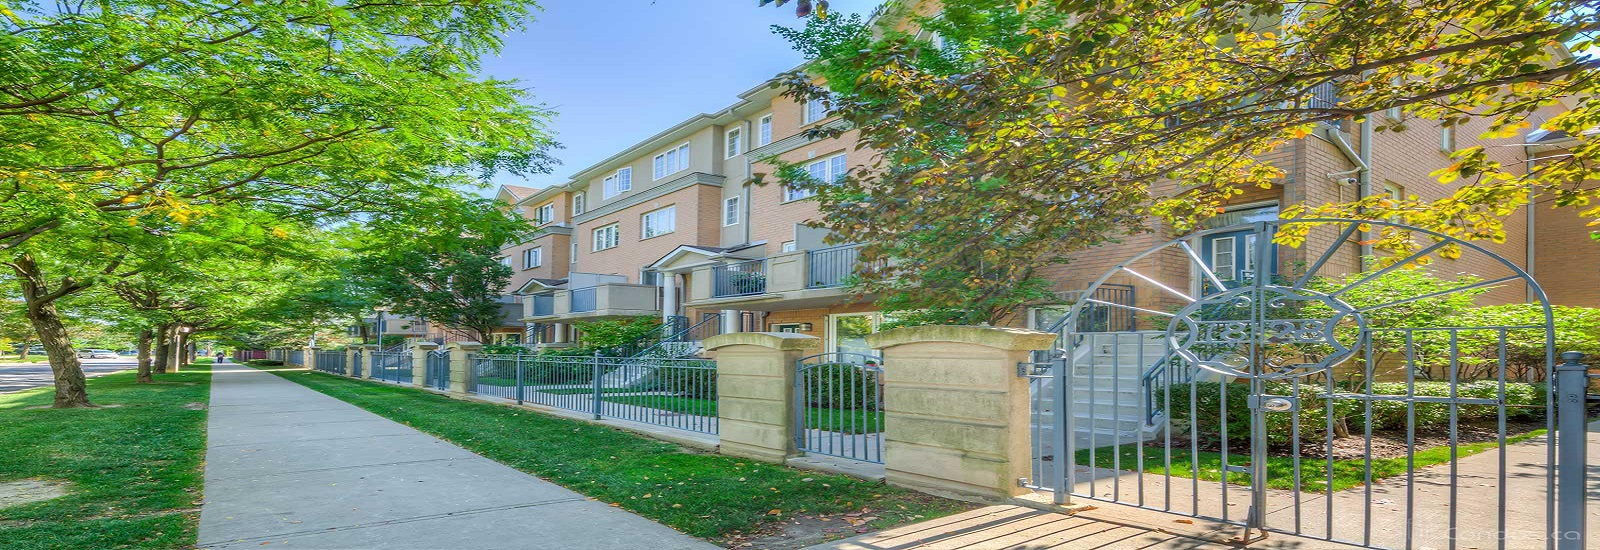 18 Sommerset Way Condos For Sale